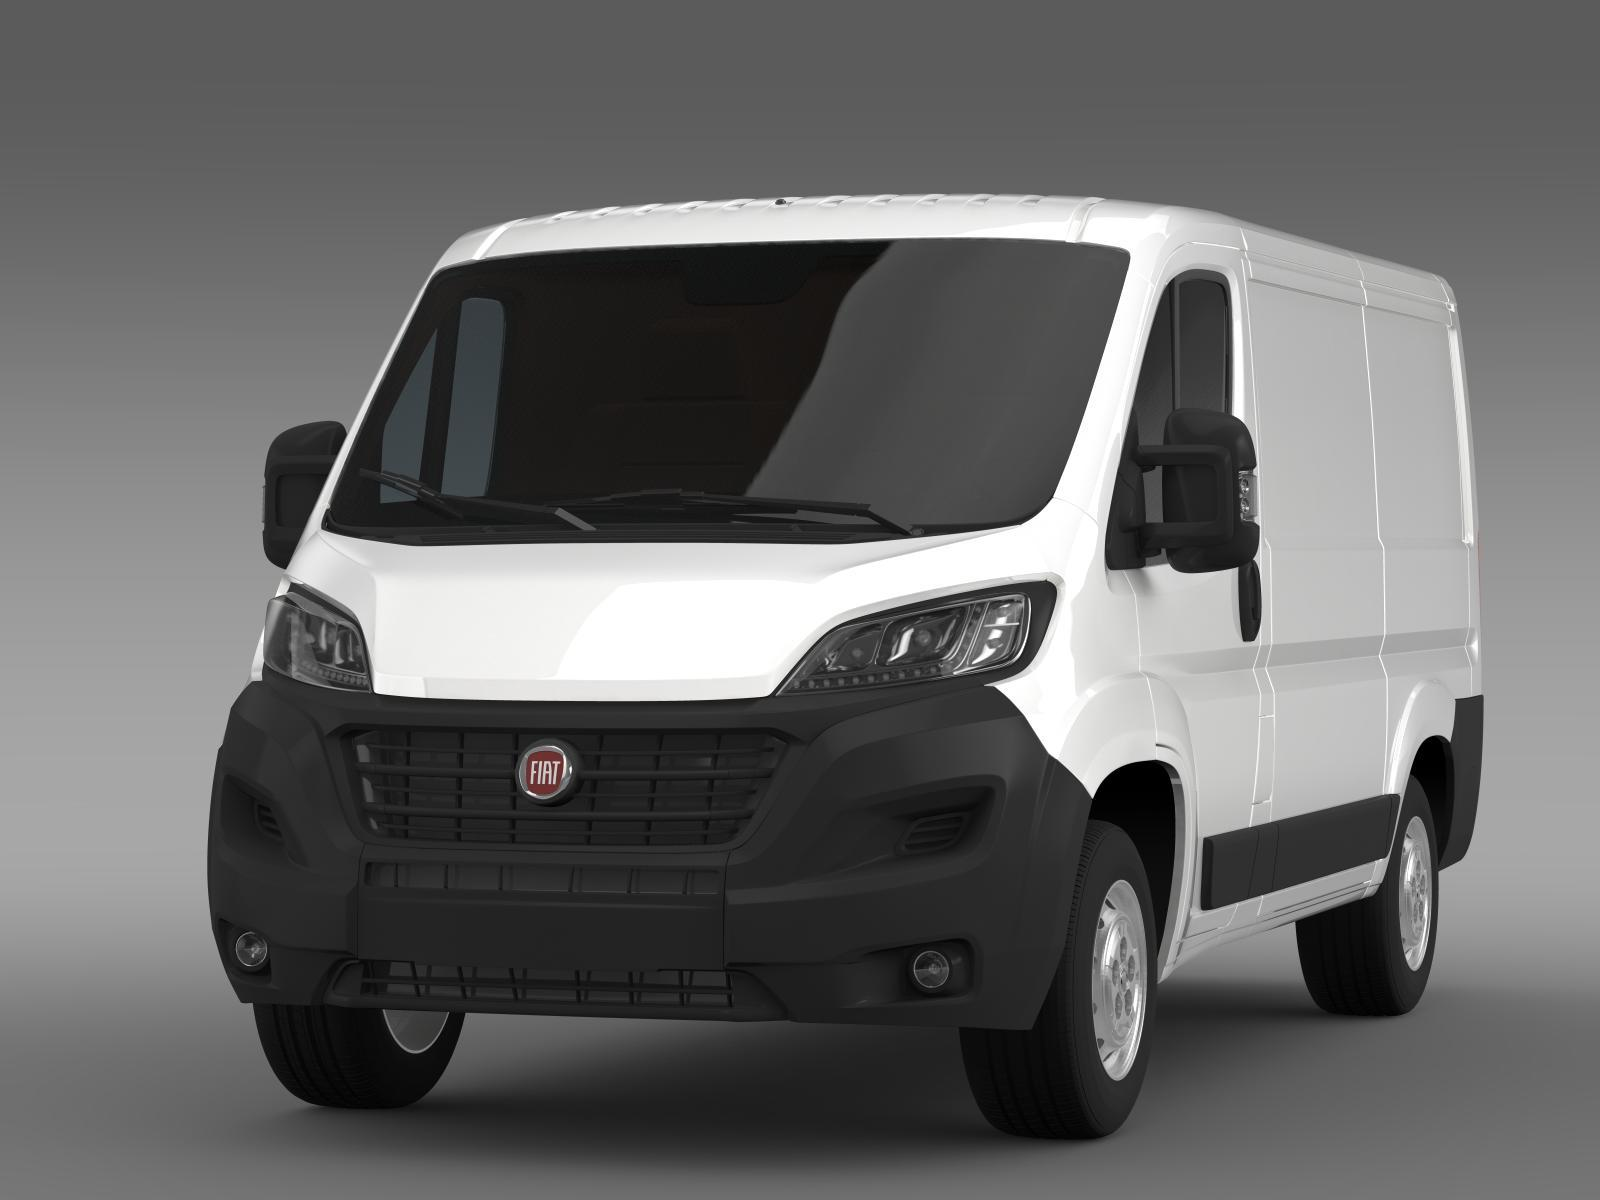 fiat ducato van l1h1 2015 by creator 3d 3docean. Black Bedroom Furniture Sets. Home Design Ideas